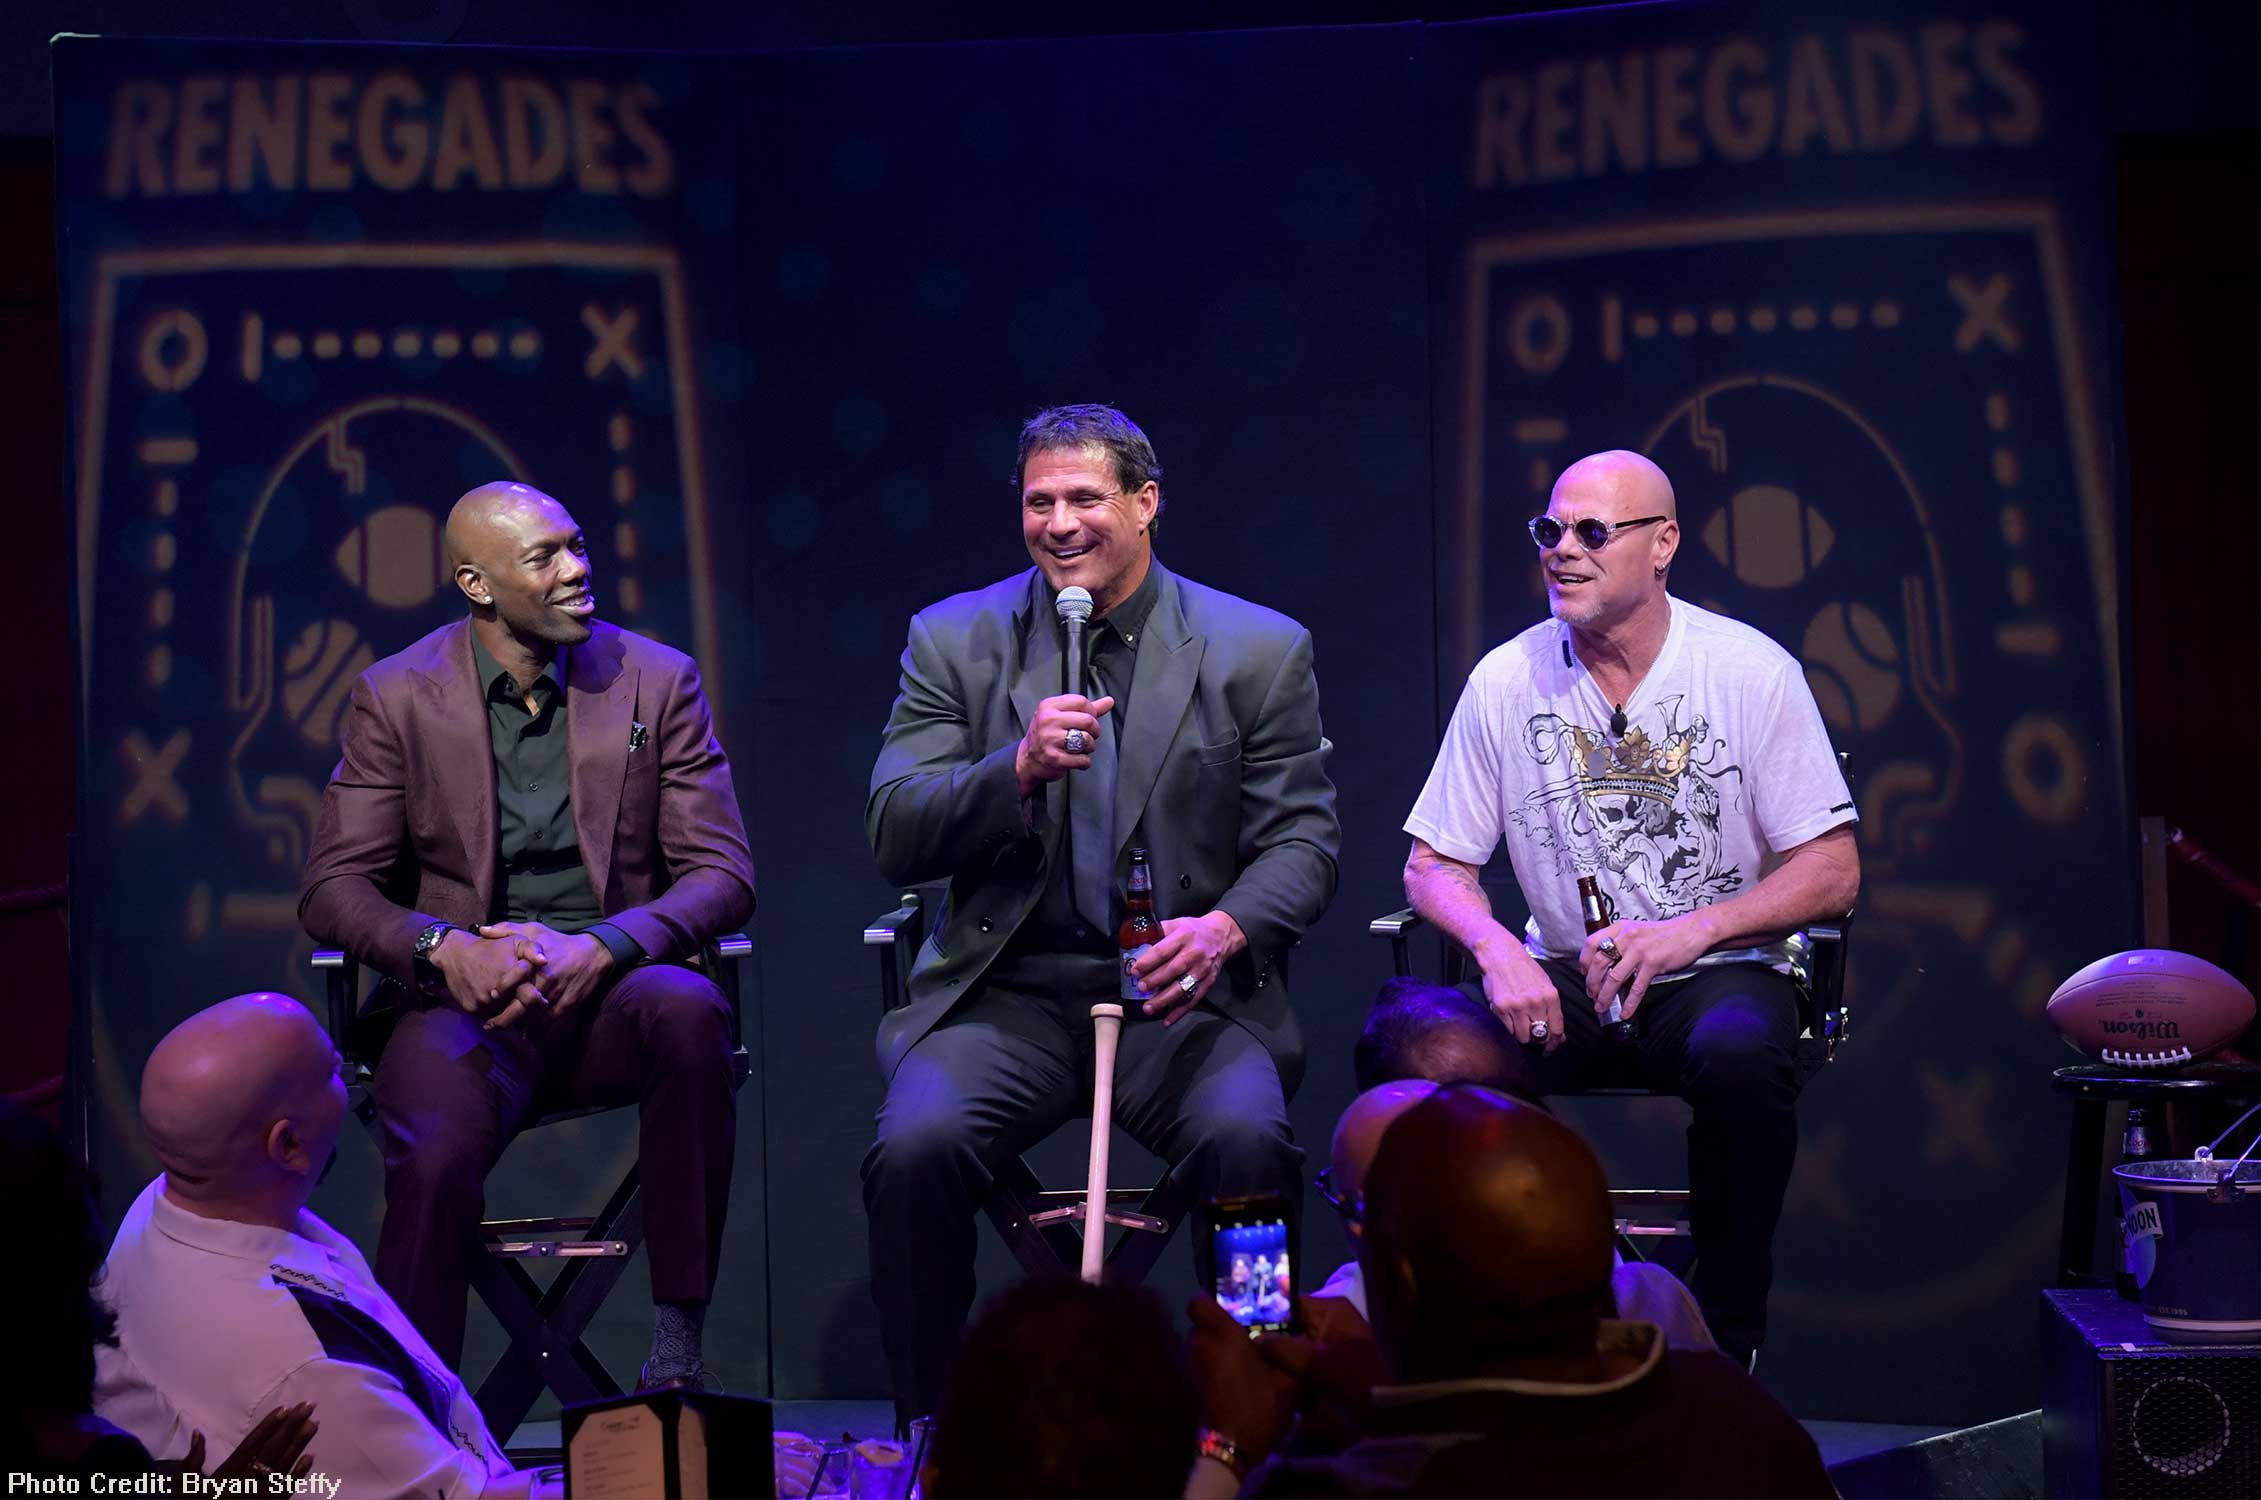 Terrell Owens, Jose Canseco and Jim McMahon celebrated the grand opening of the new show Renegades